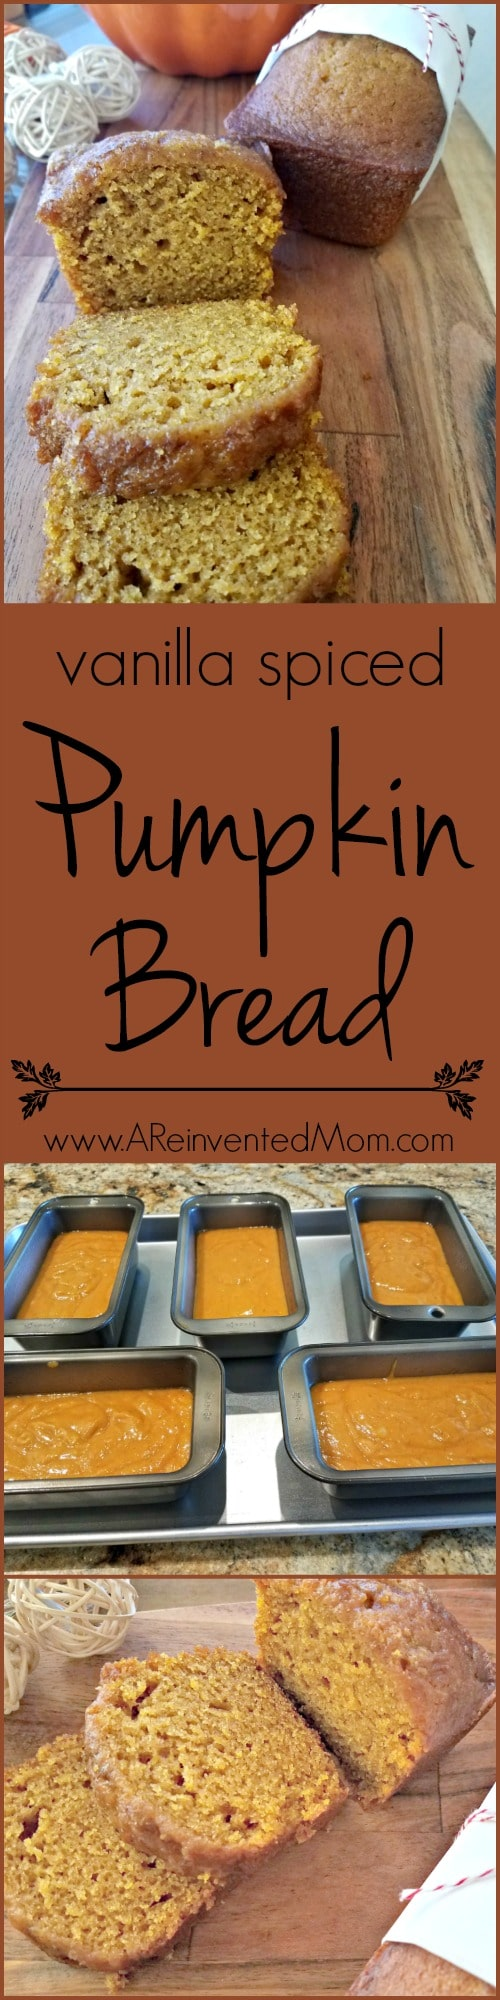 Looking to jazz up your Thanksgiving bread basket or dessert table? A batch of Vanilla Spiced Pumpkin Bread should do the trick | A Reinvented Mom